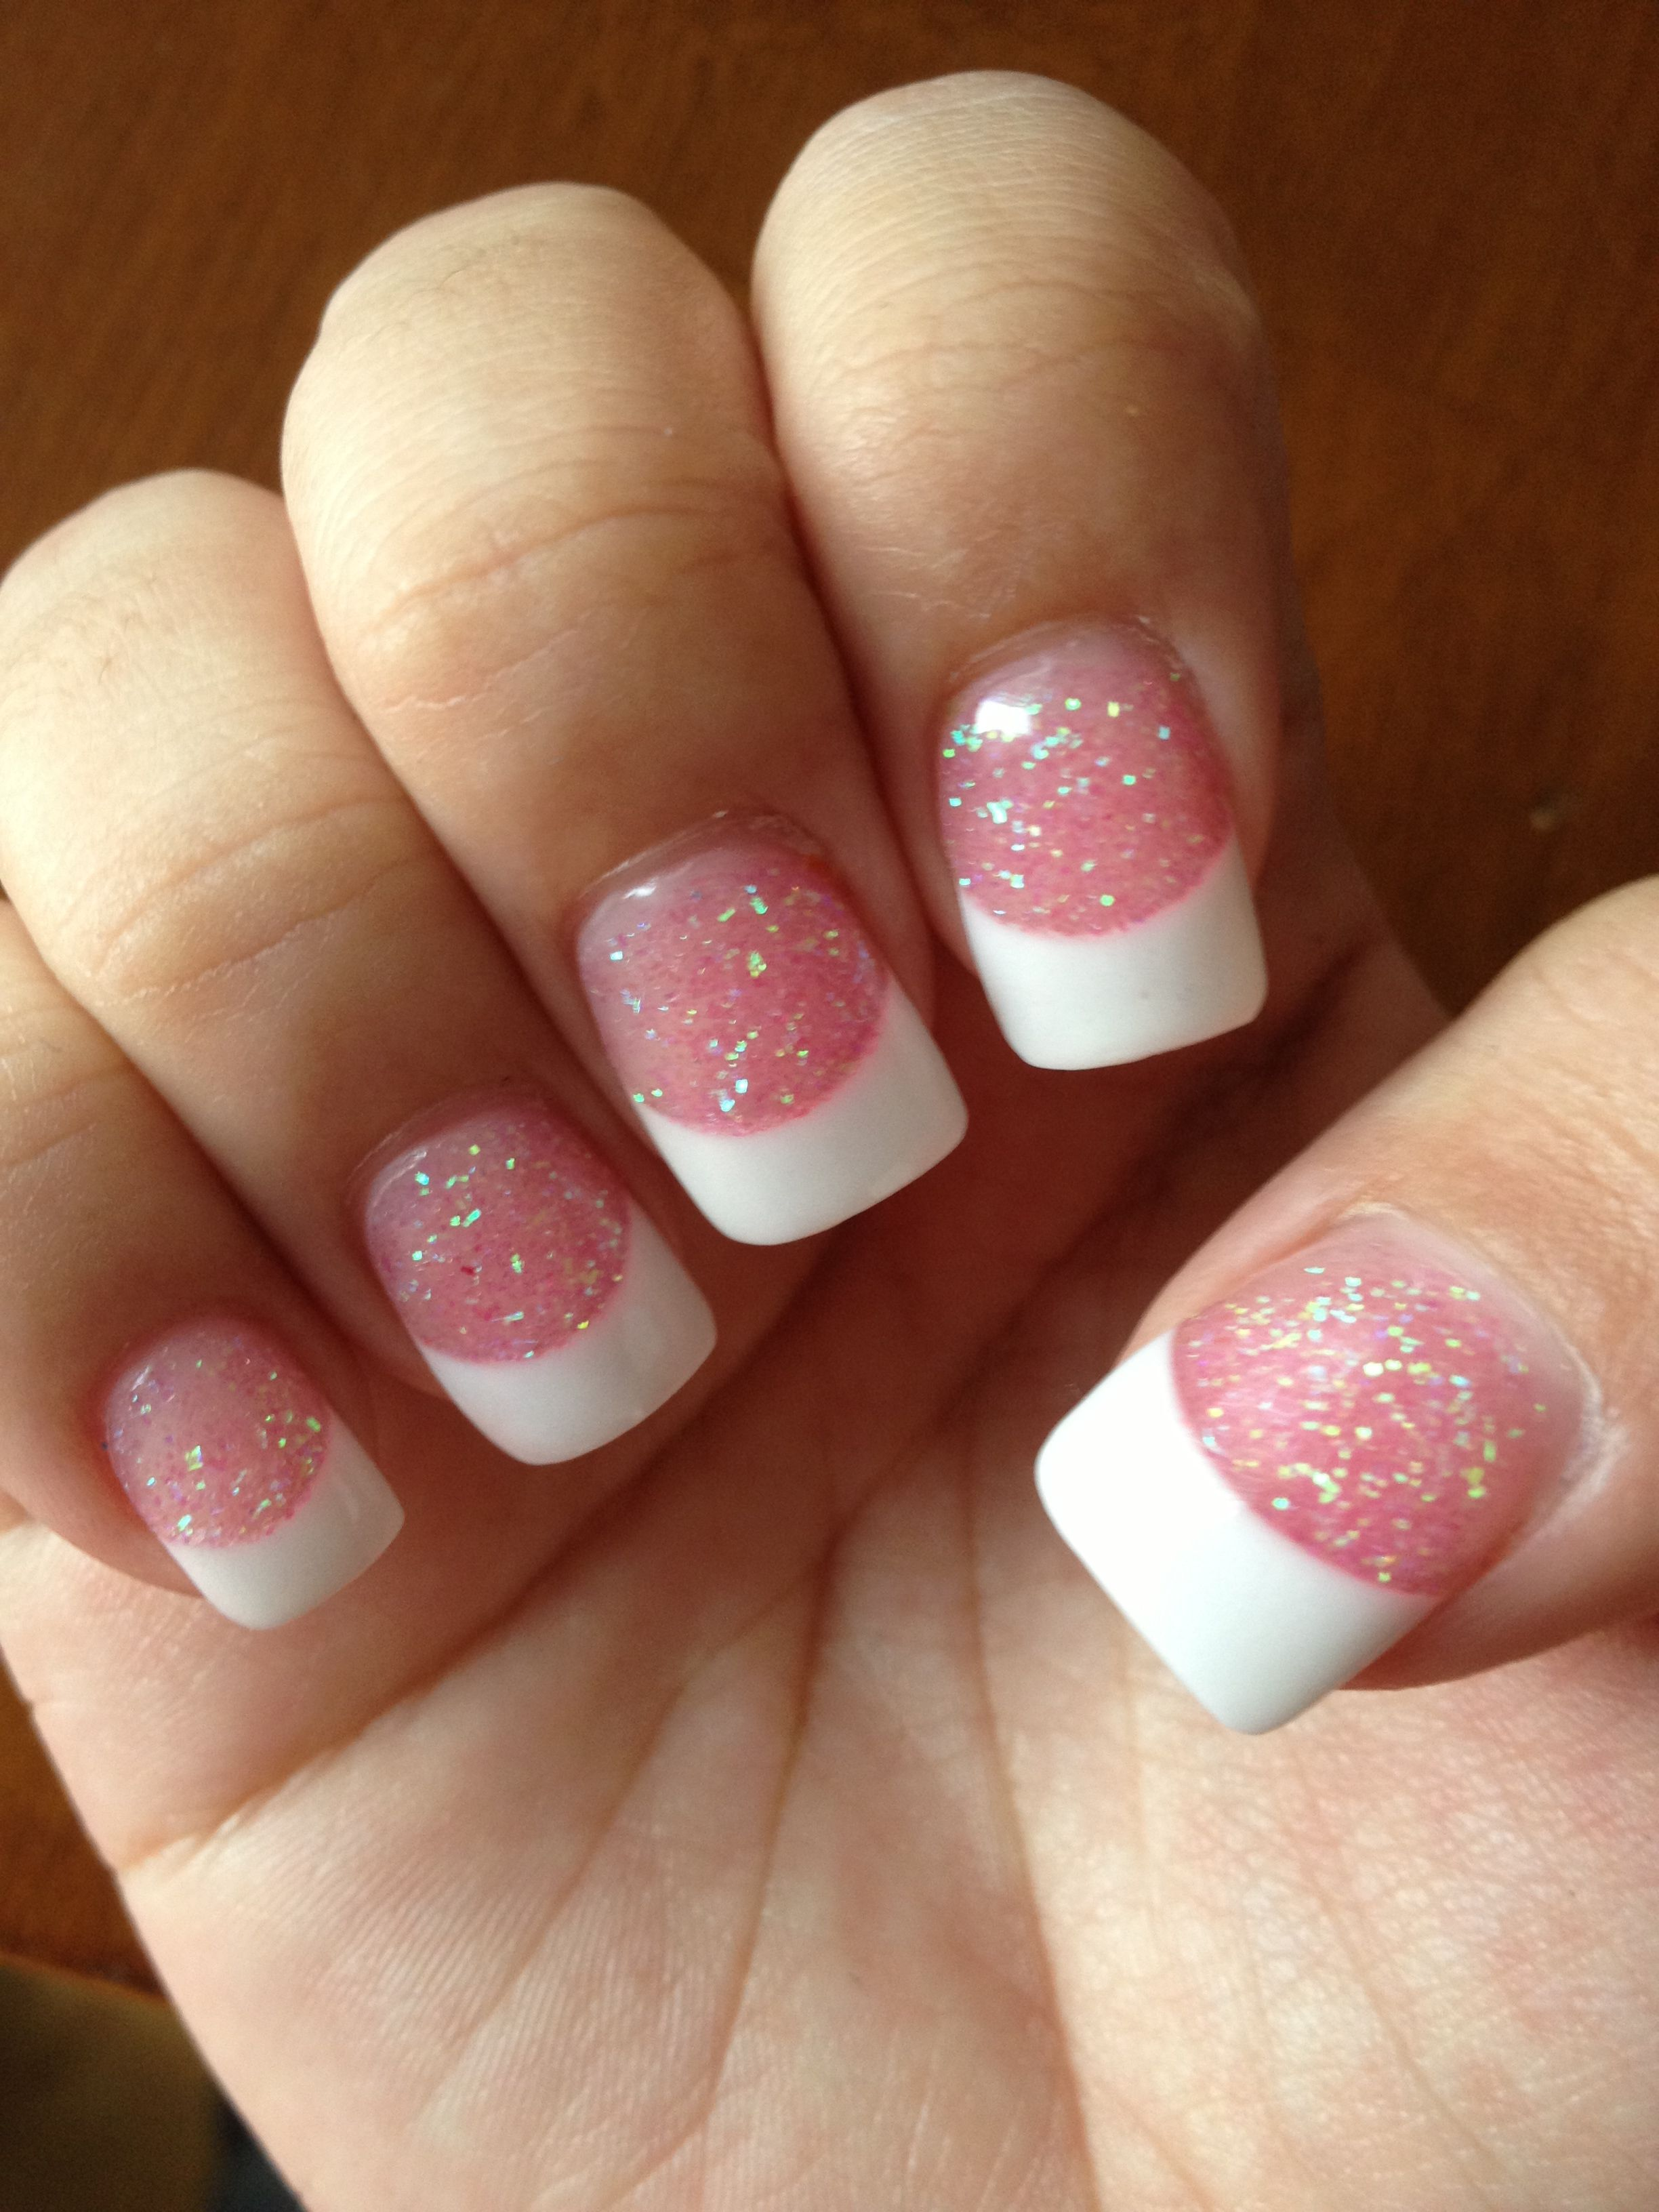 Acrylic nails- white tip with pink glitter base. | Nails